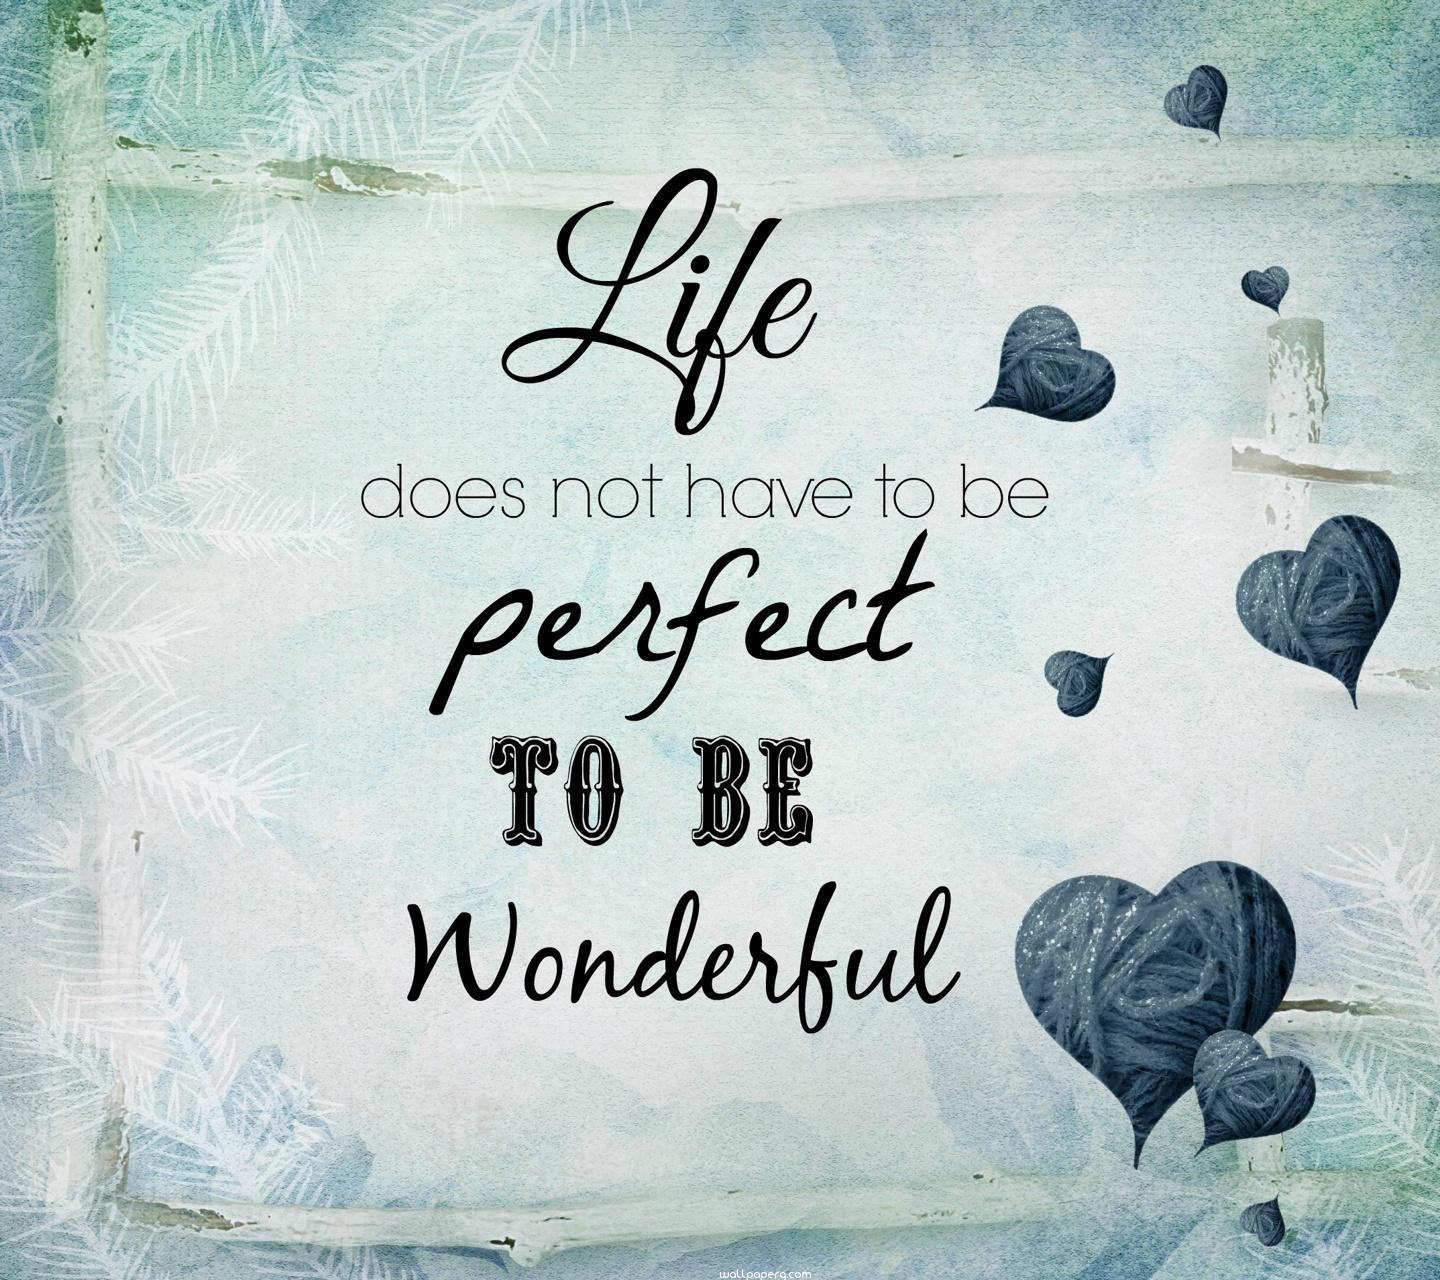 Download Wonderful Life Quote Hd Wallpaper For Laptop Mobile Cell Phone